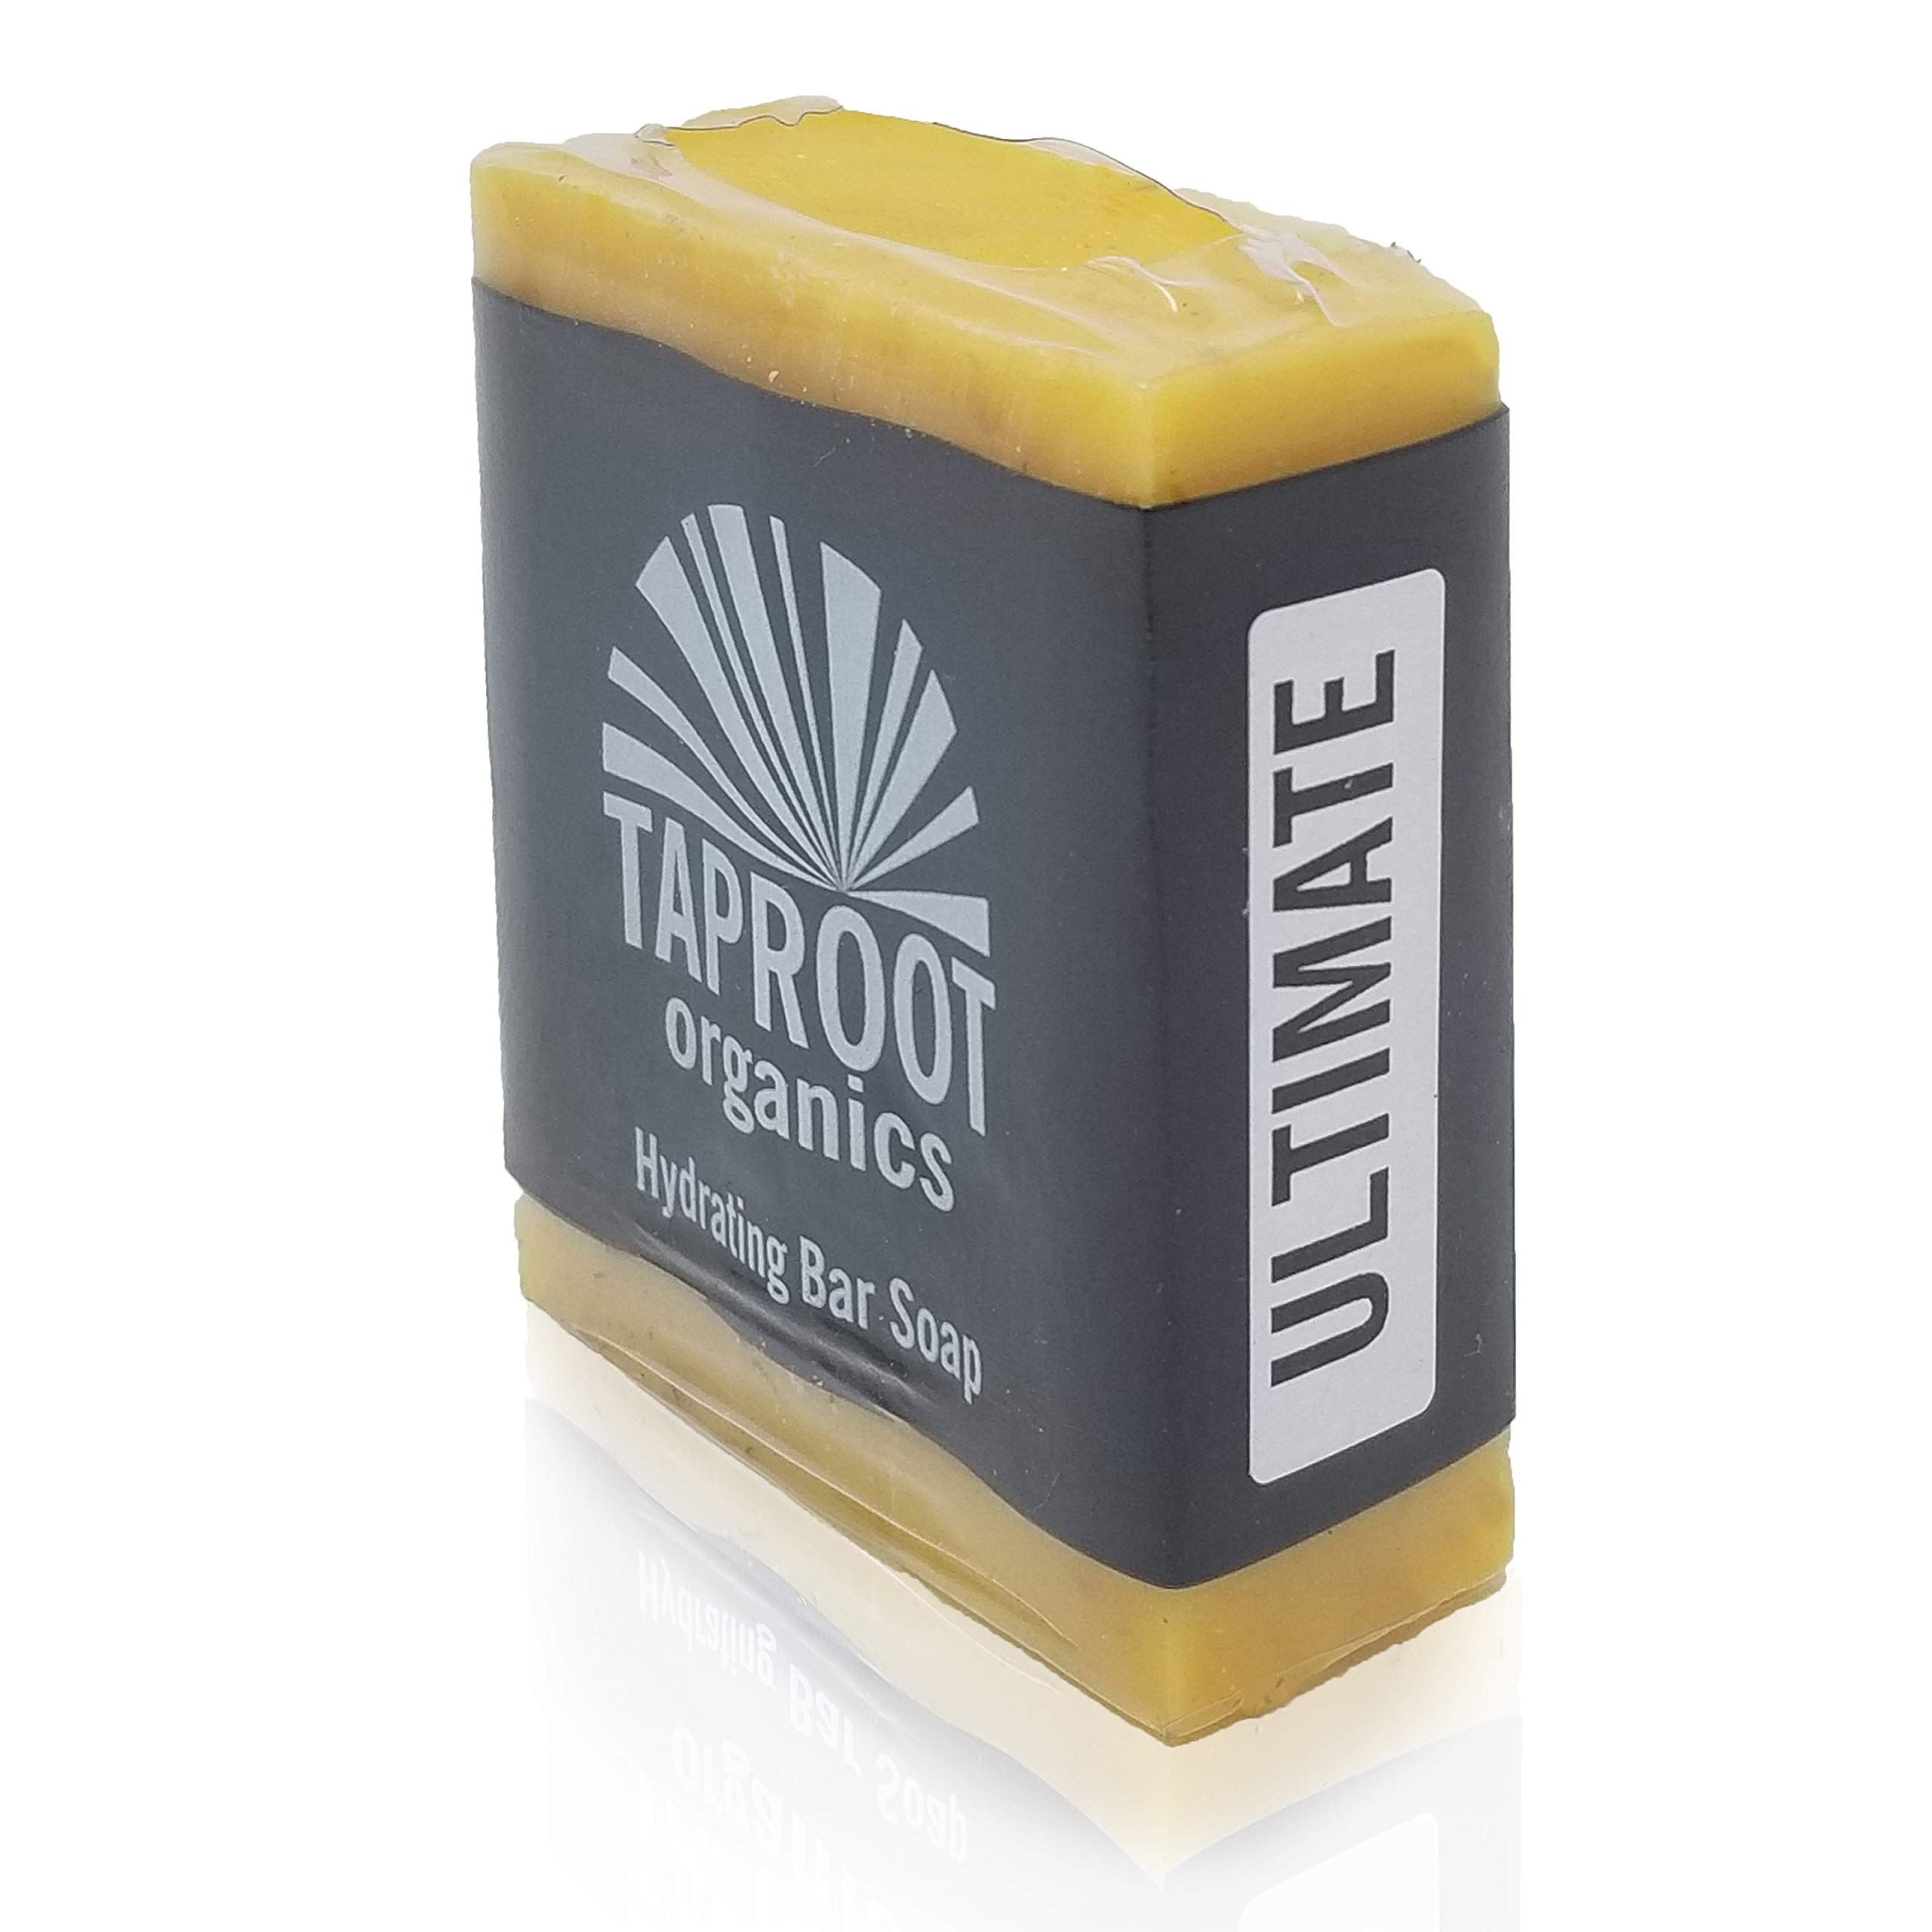 TAPROOT ORGANICS - ULTIMATE SHEA Cold Process Bar Soap for Healthier Sensitive Skin. Handmade with Coconut Oil, Olive Oil and 20% Raw Shea Butter, Body and Face soap for the ENTIRE FAMILY! (Vegan)